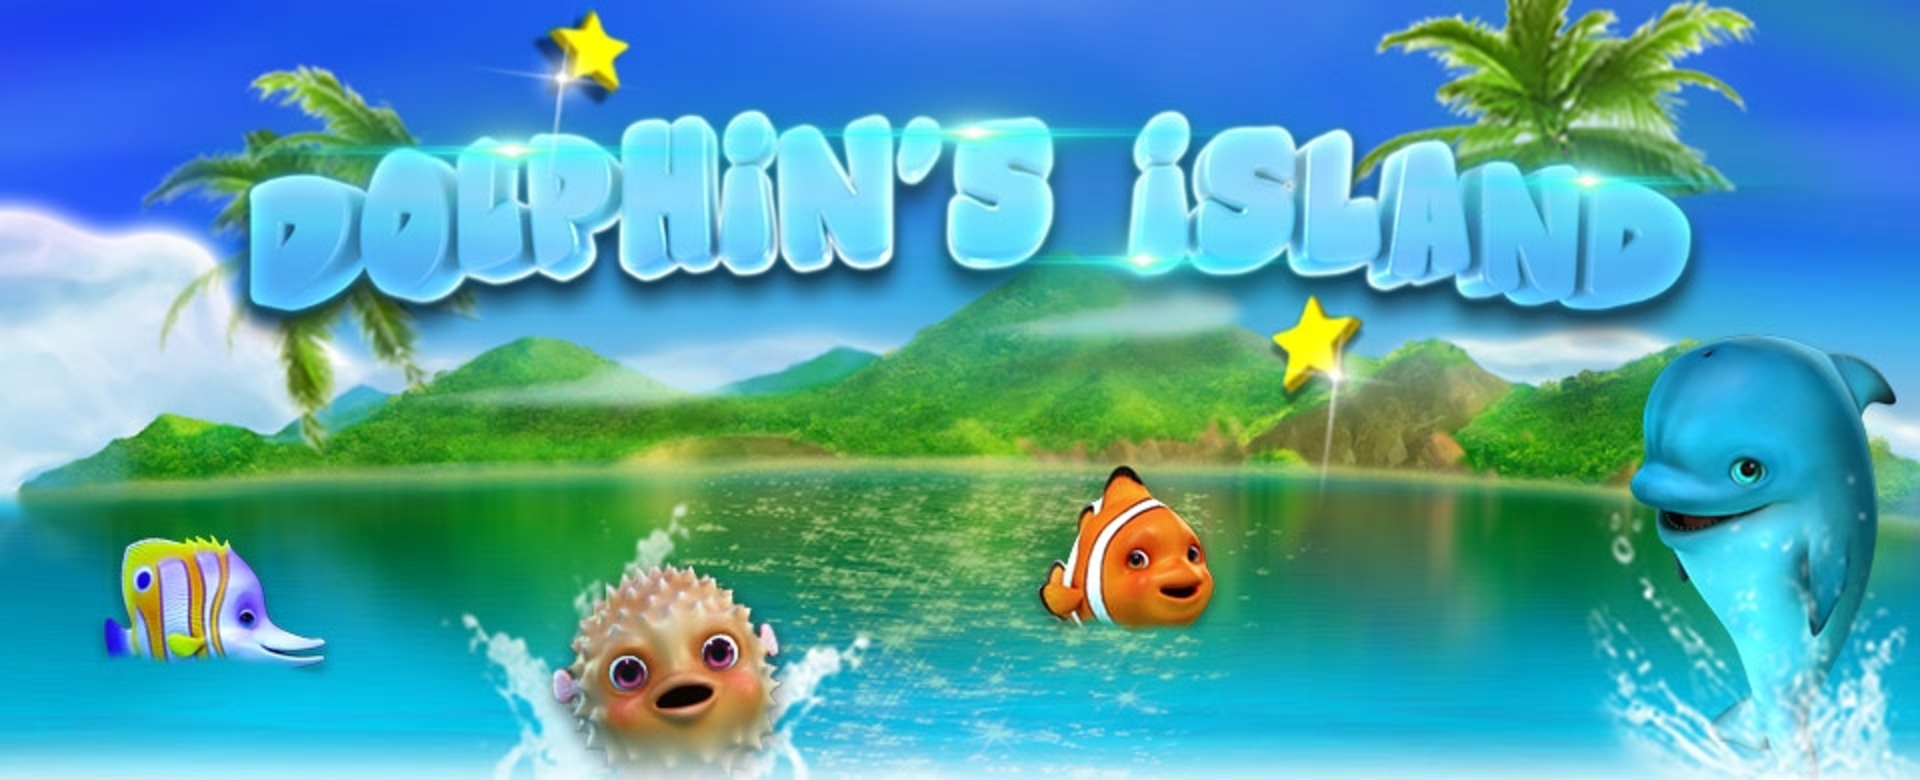 Dolphin's Island Online Slot Demo Game by iSoftBet